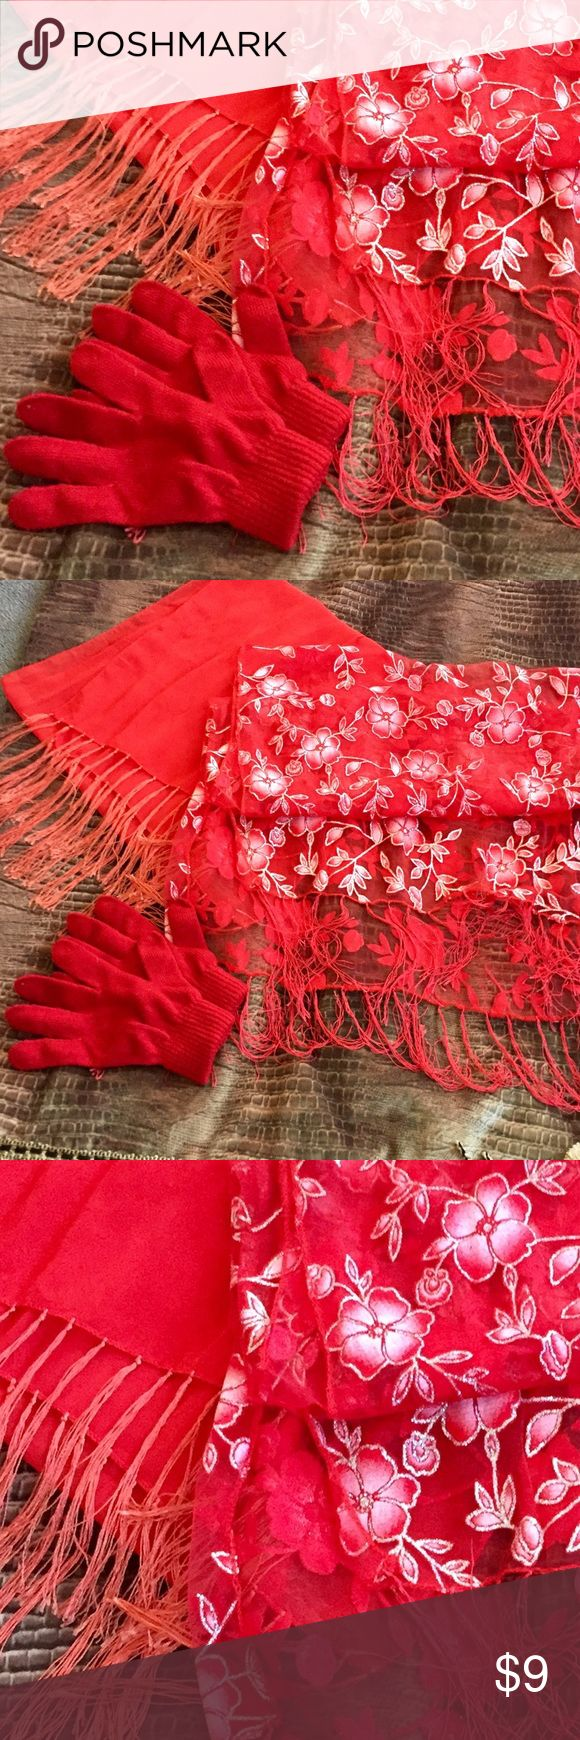 Red scarves ♨️ To read sheer scarves. The flower one measures 60 inches. The Red chair one measures 50 inches. The gloves are included free. 💋 Accessories Scarves & Wraps